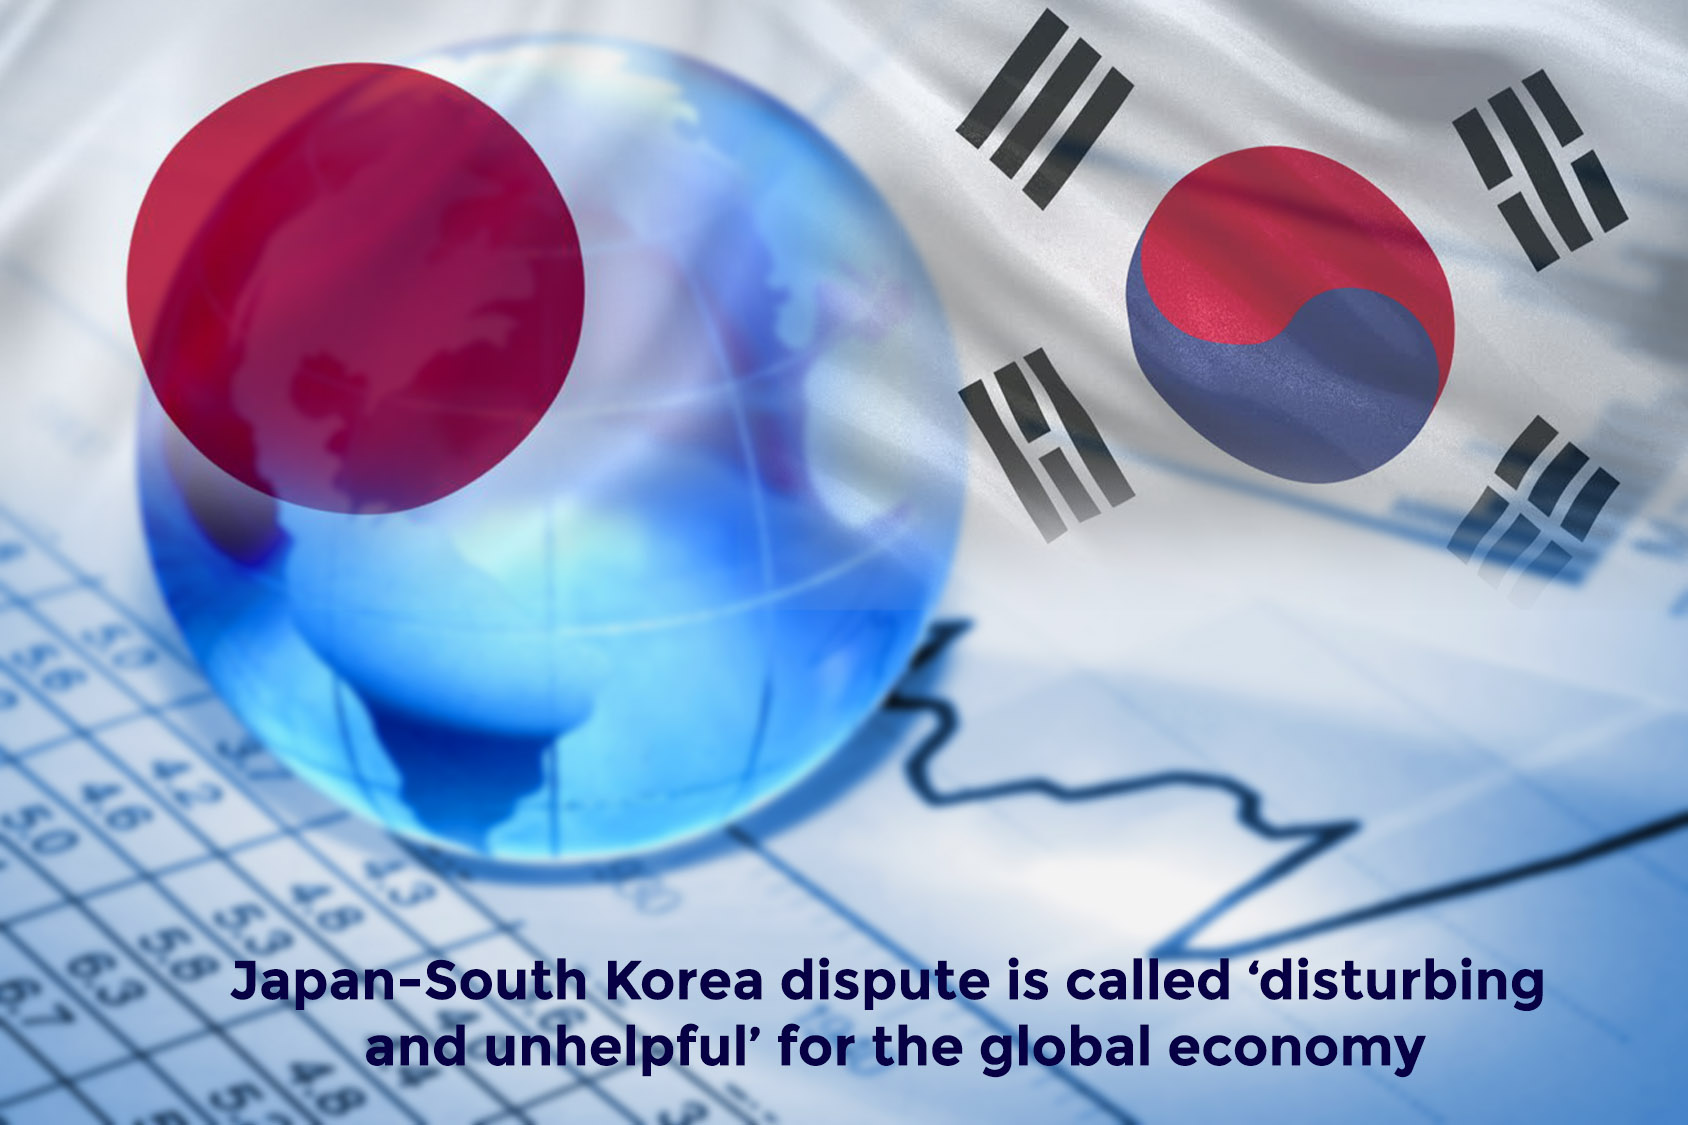 Dispute among Japan and South Korea might Disturb Global Economy